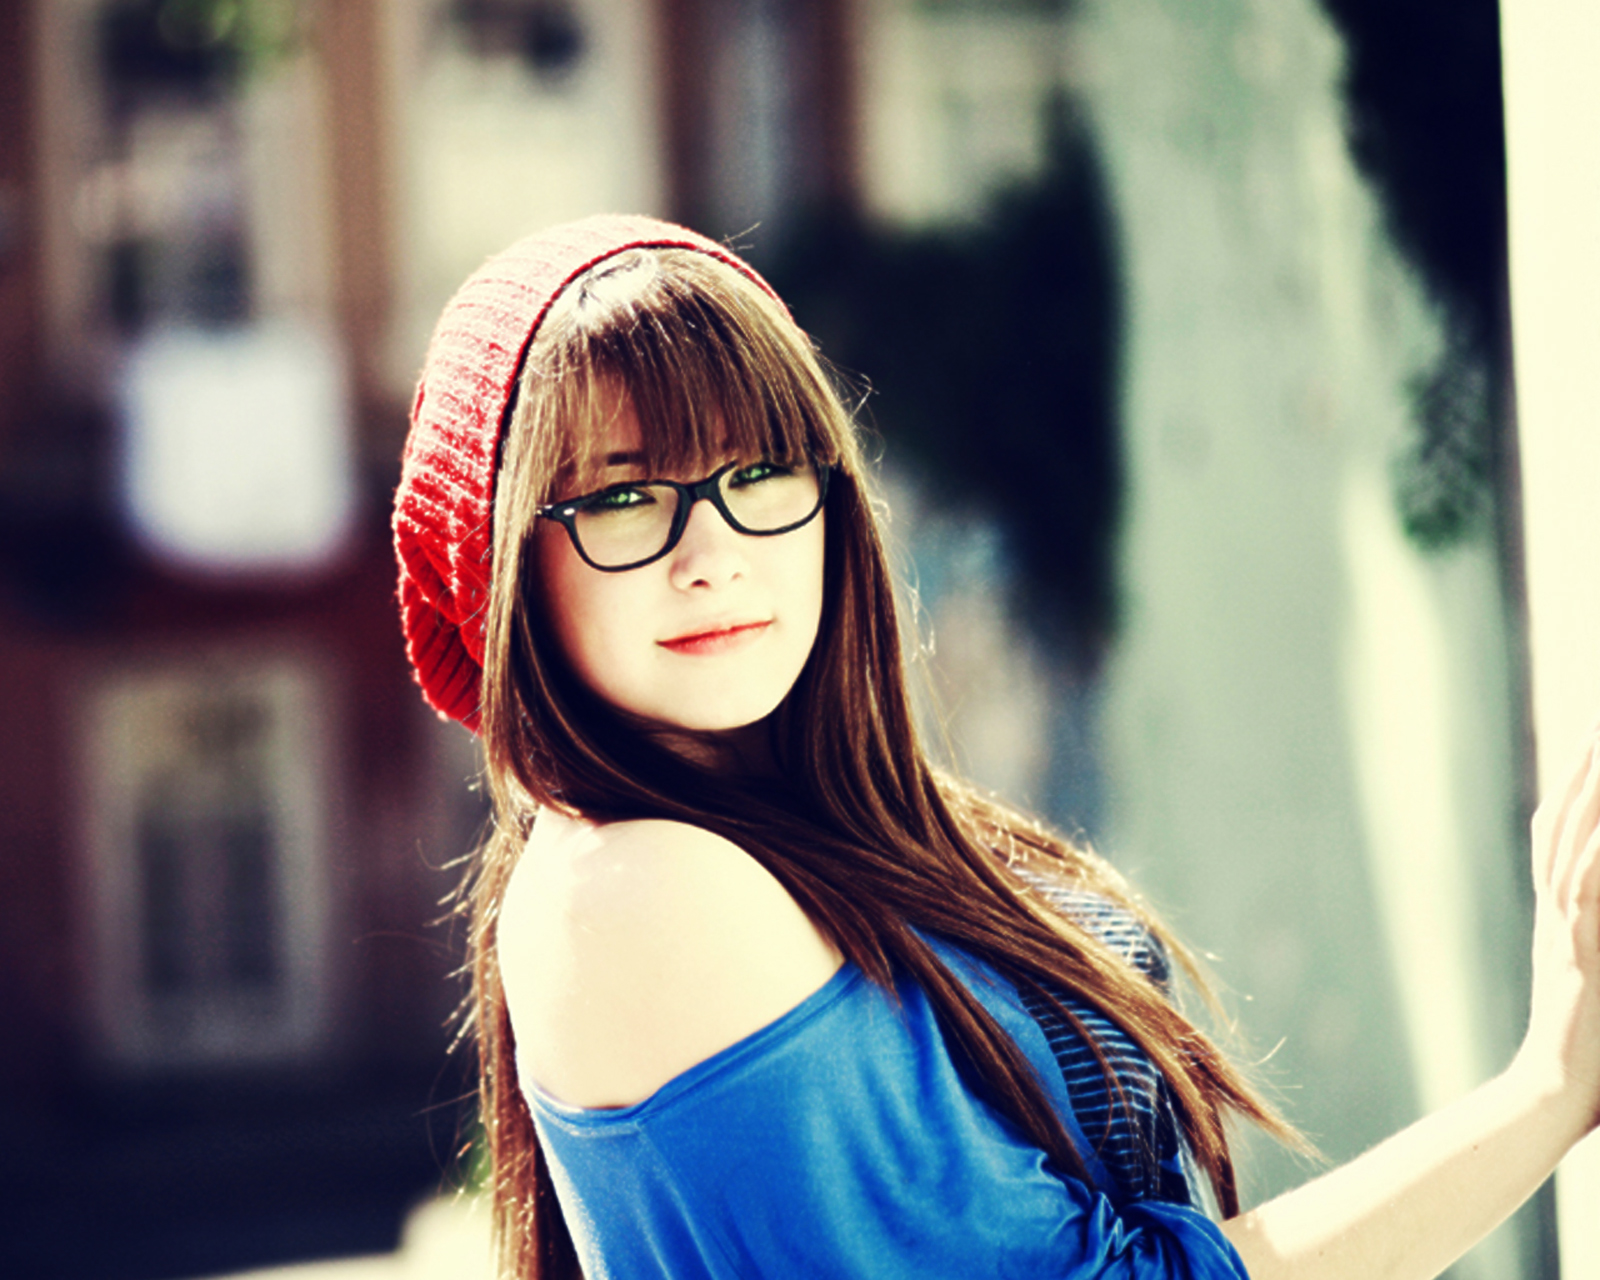 Cute Girl With Glasses and Red Wool Vintage Beret HD Wallpaper